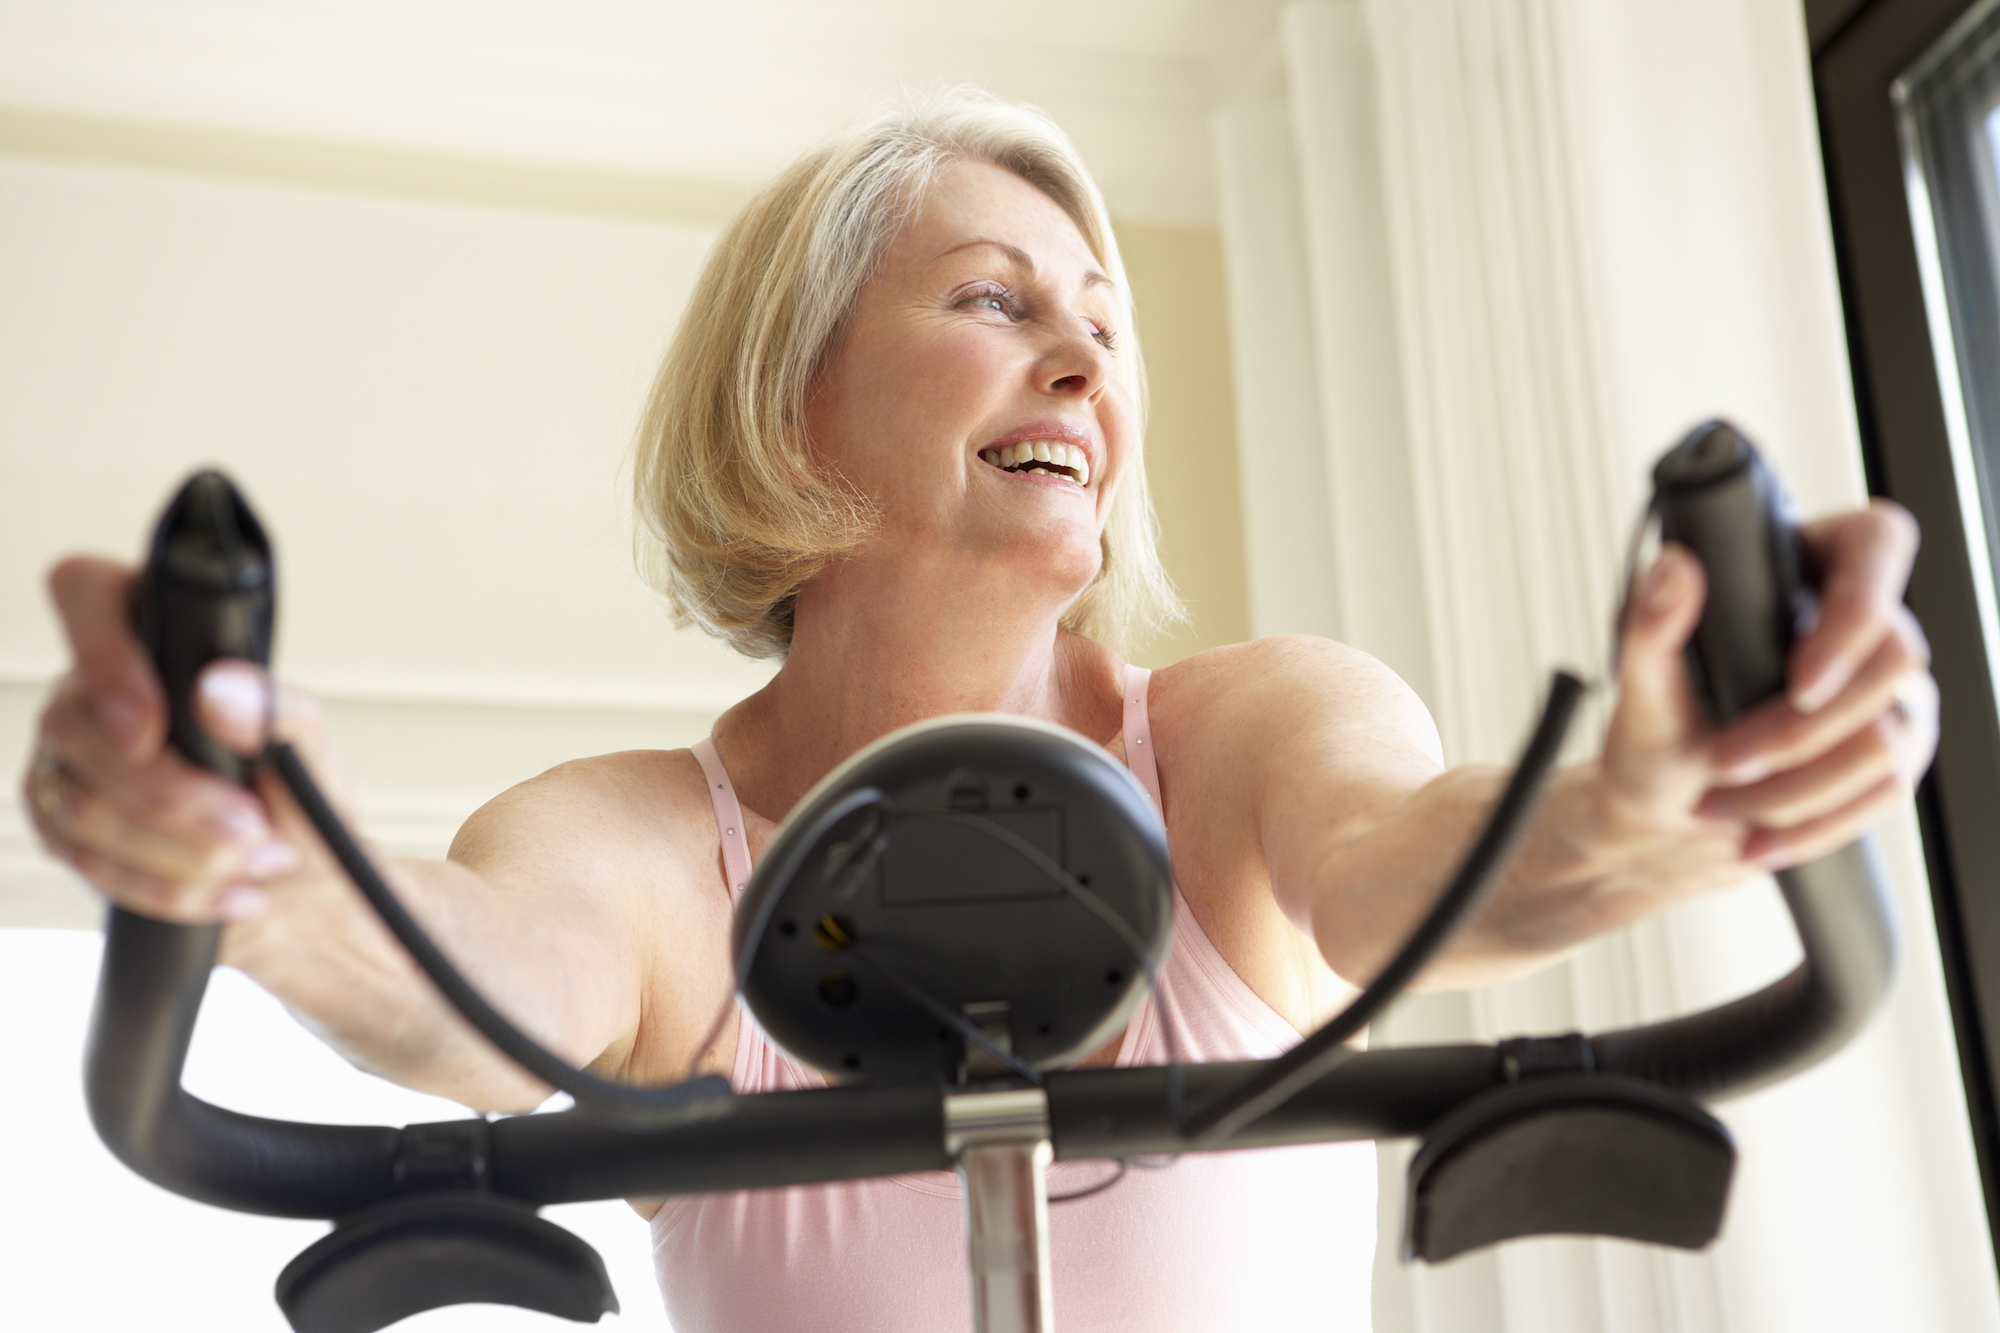 senior woman smiling on exercise bike in her home working out